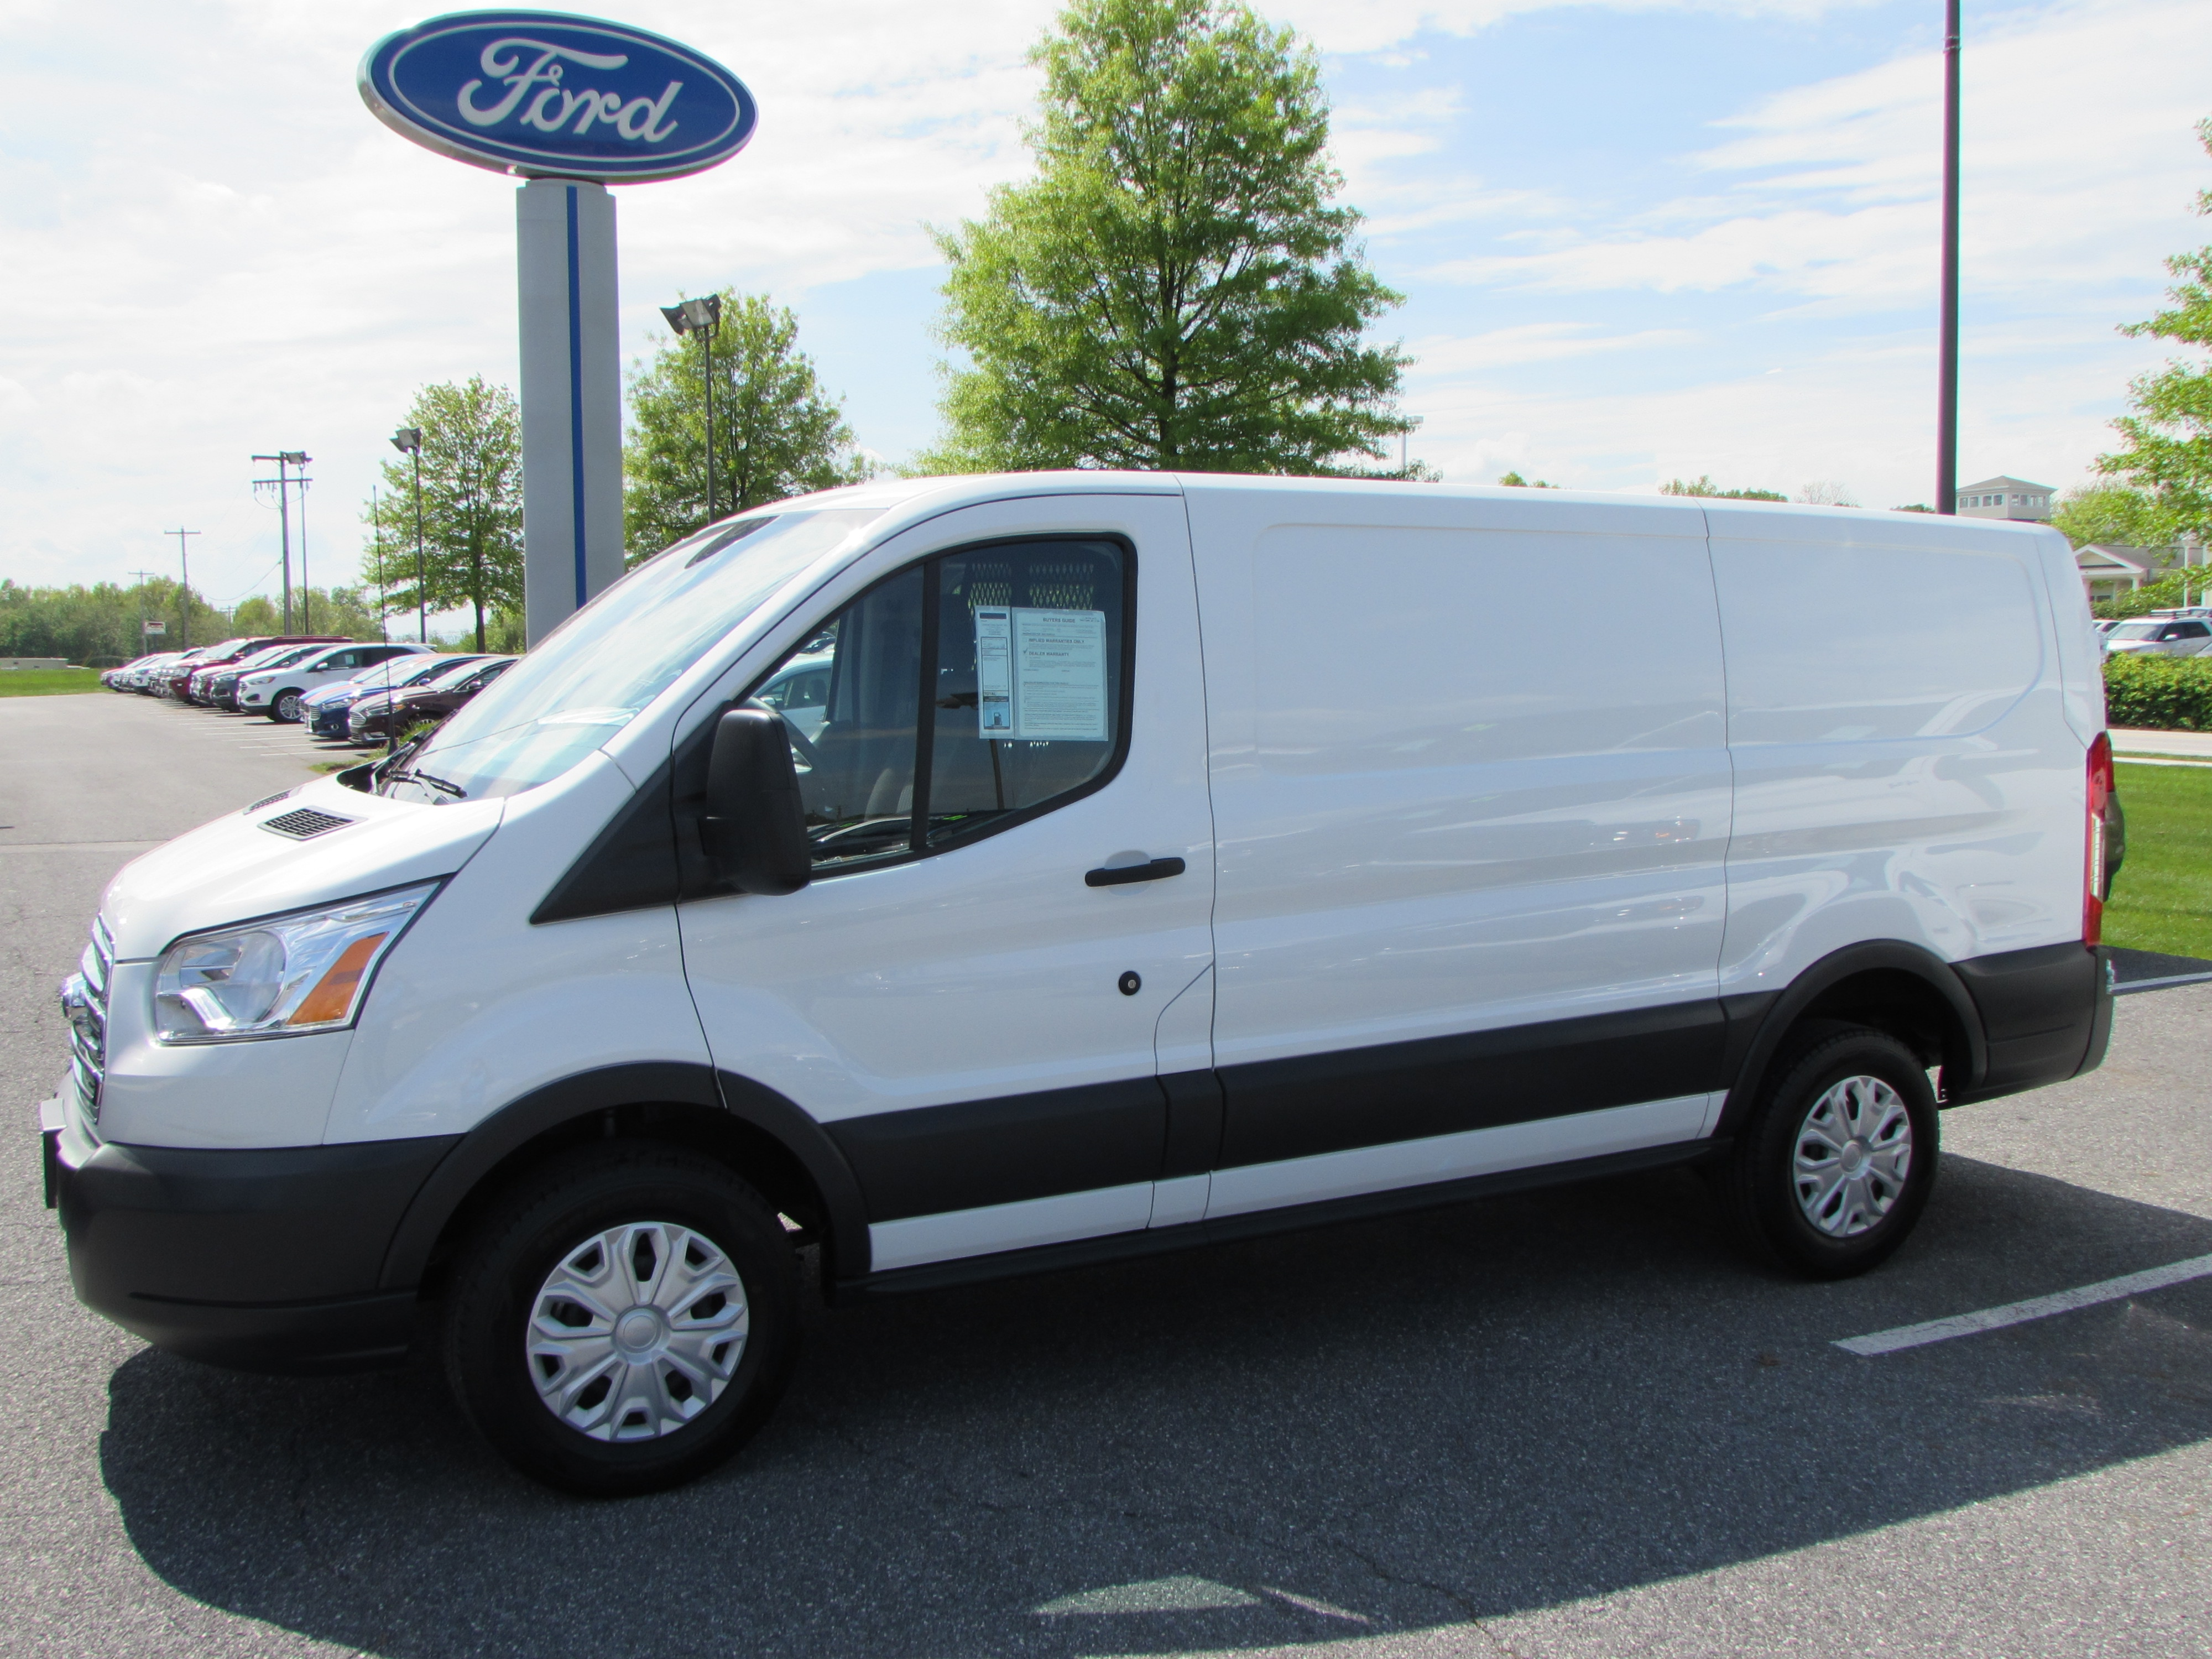 2018 Ford Transit Commercial Cargo Van Commercial-truck